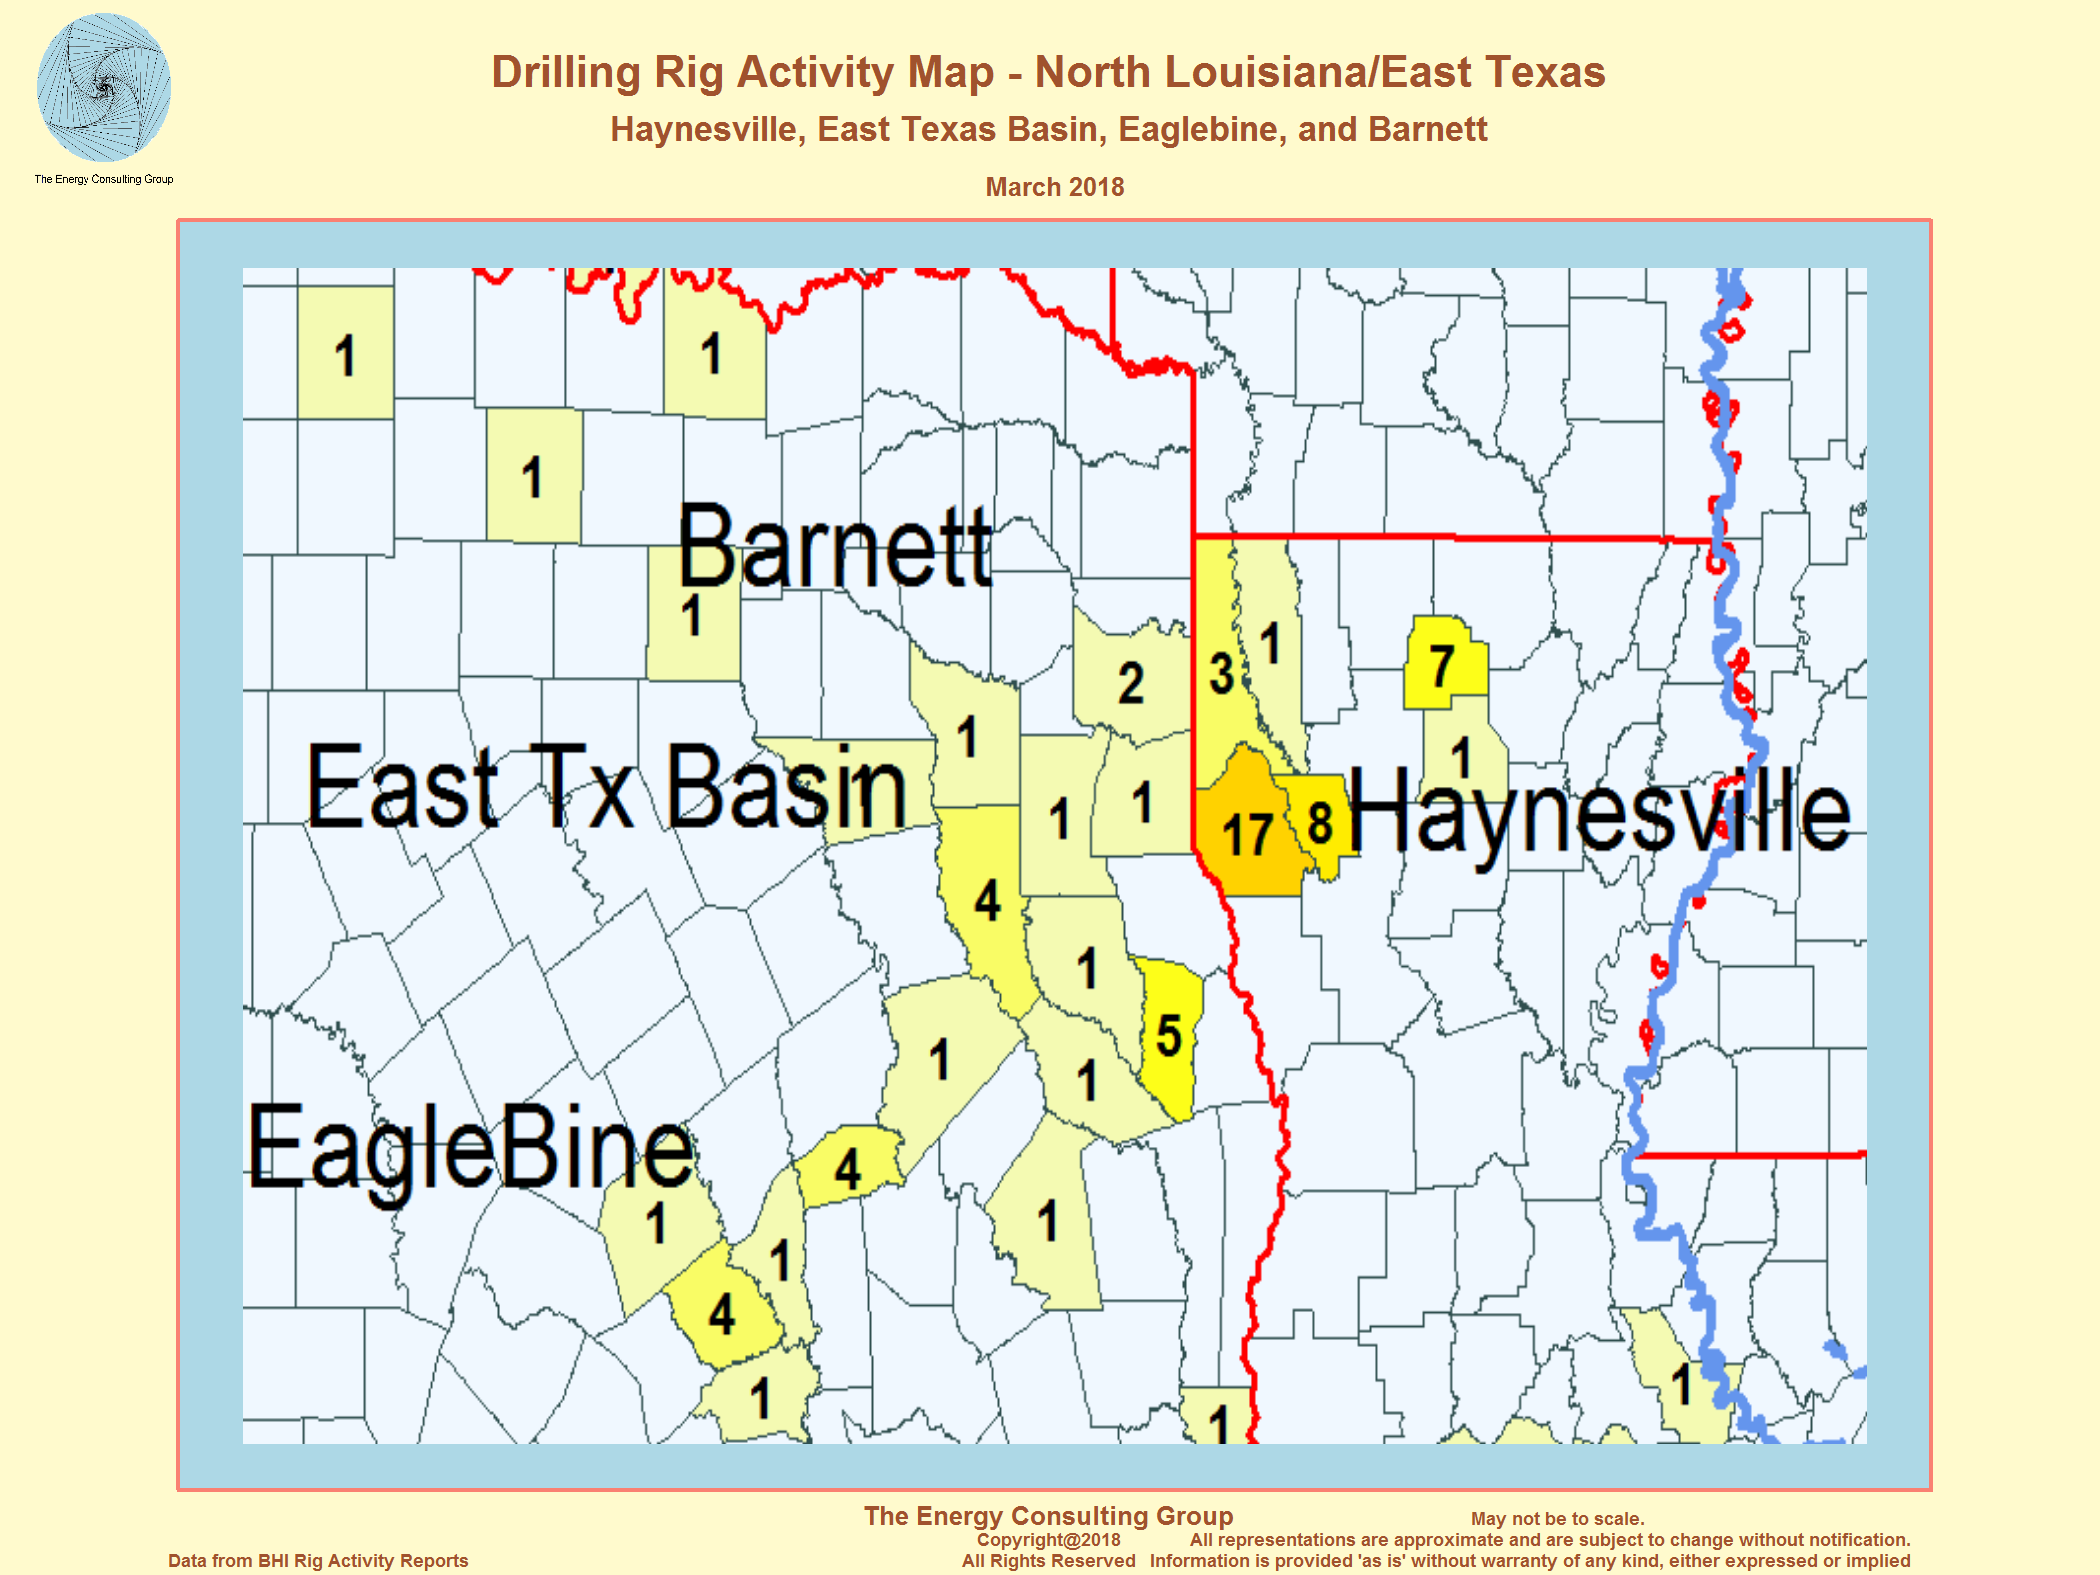 us drilling rig activity map haynesville east texas and north louisiana